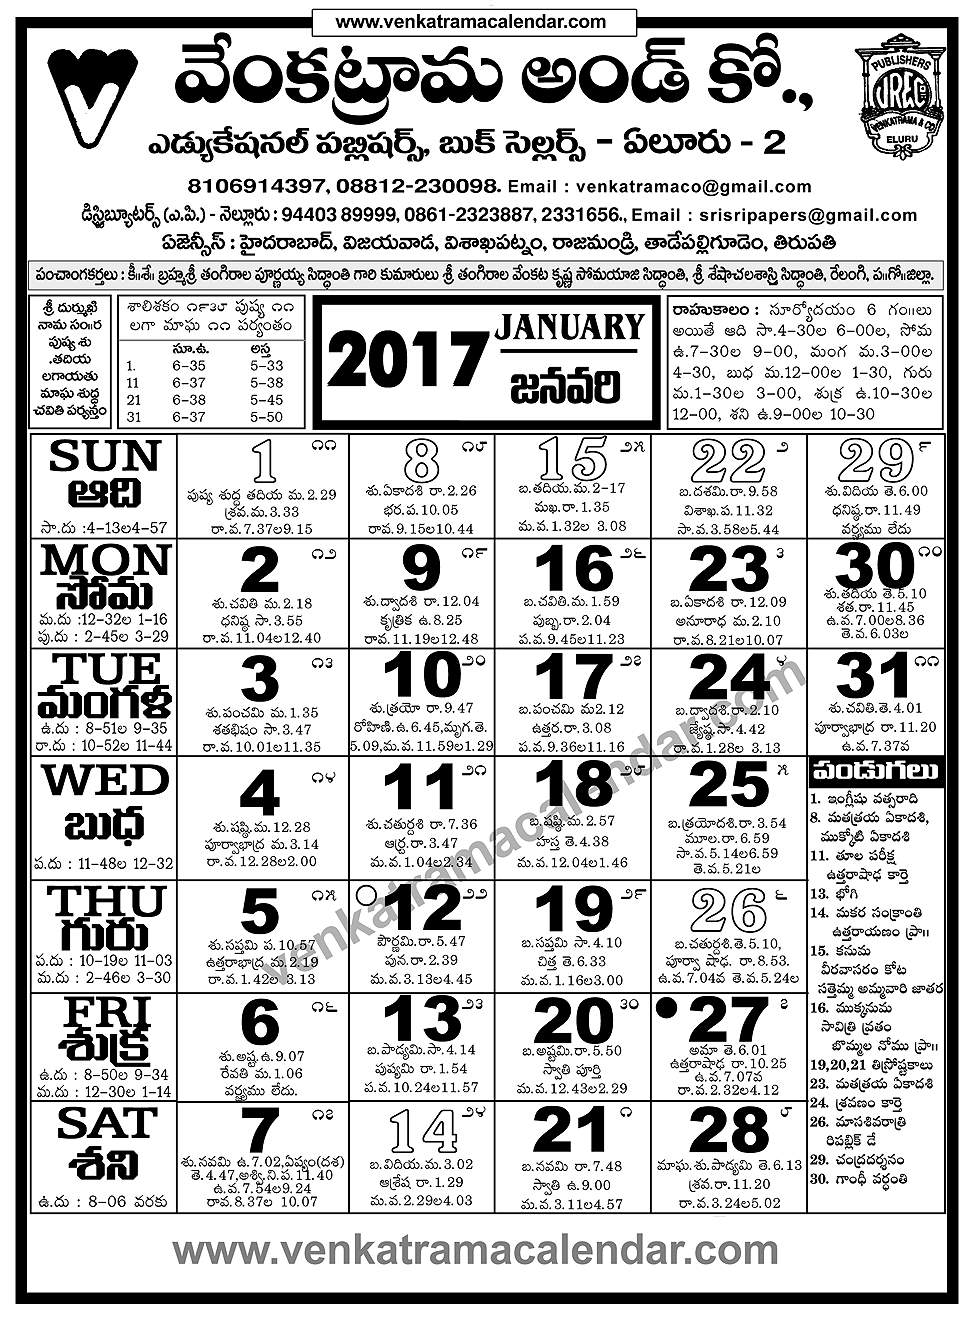 April Venkatrama Co Calendar : Venkatrama co january telugu calendar festivals